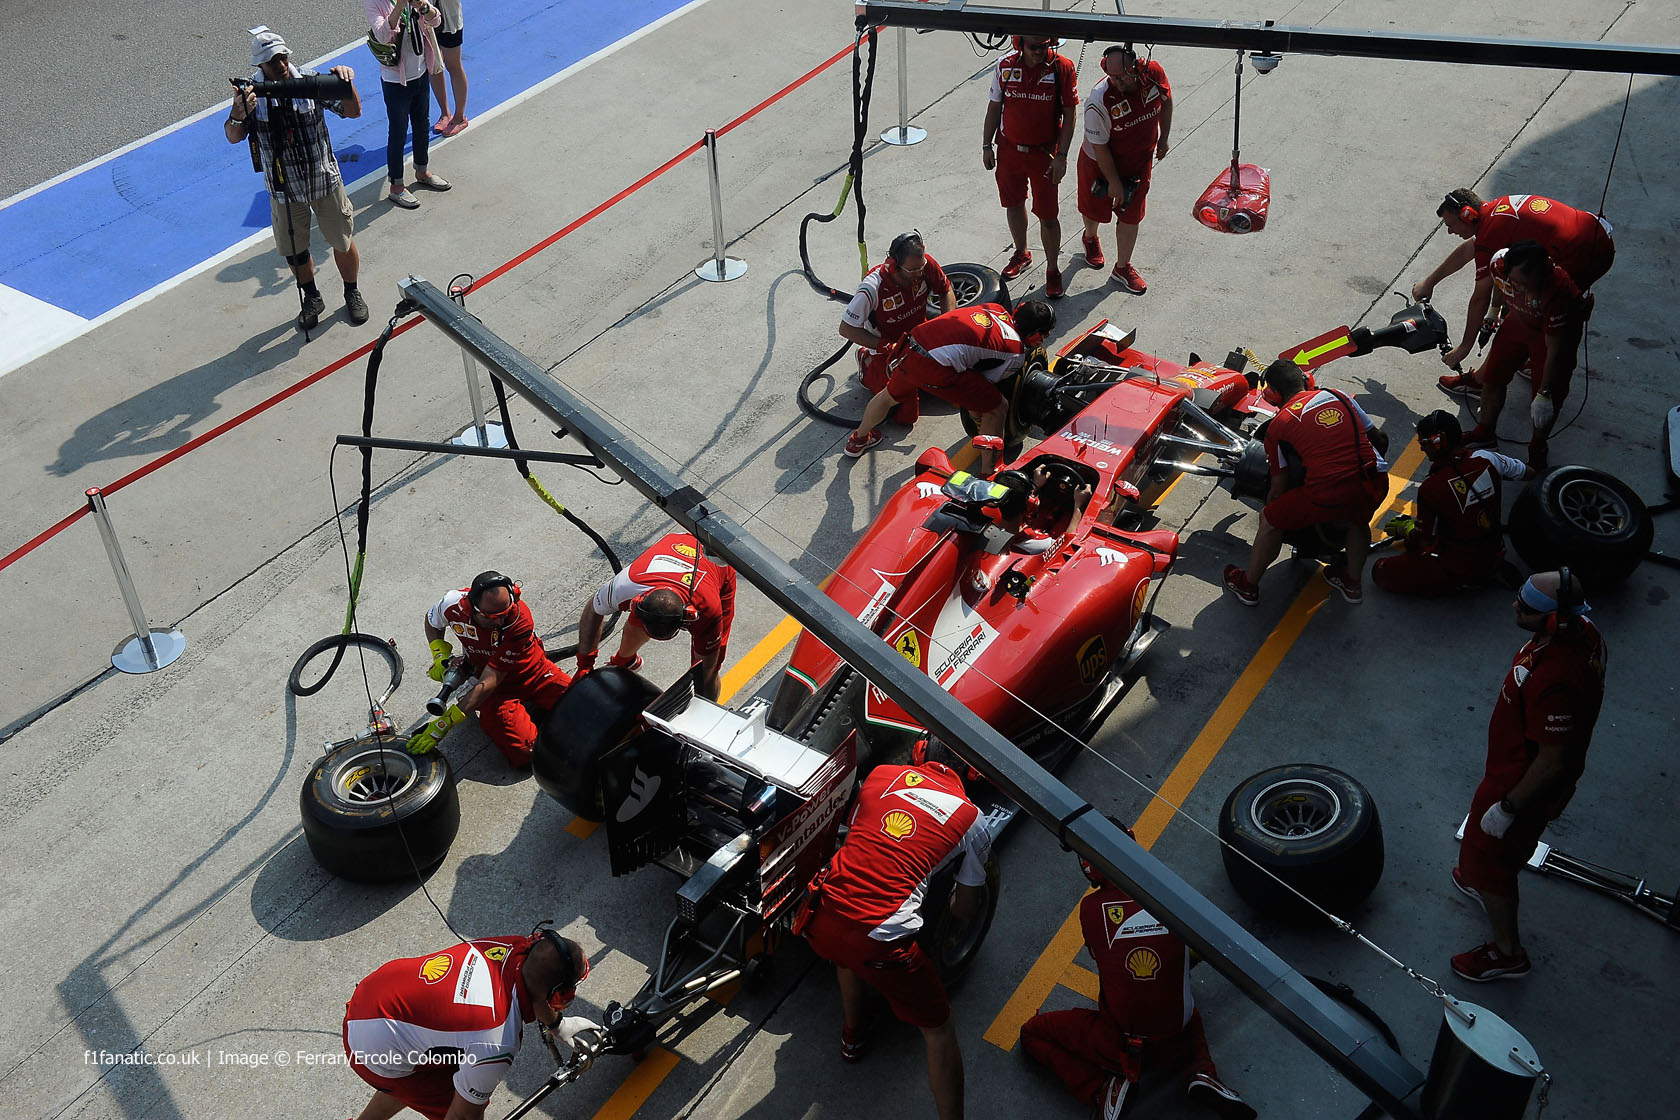 Ferrari, Sepang International Circuit, 2014